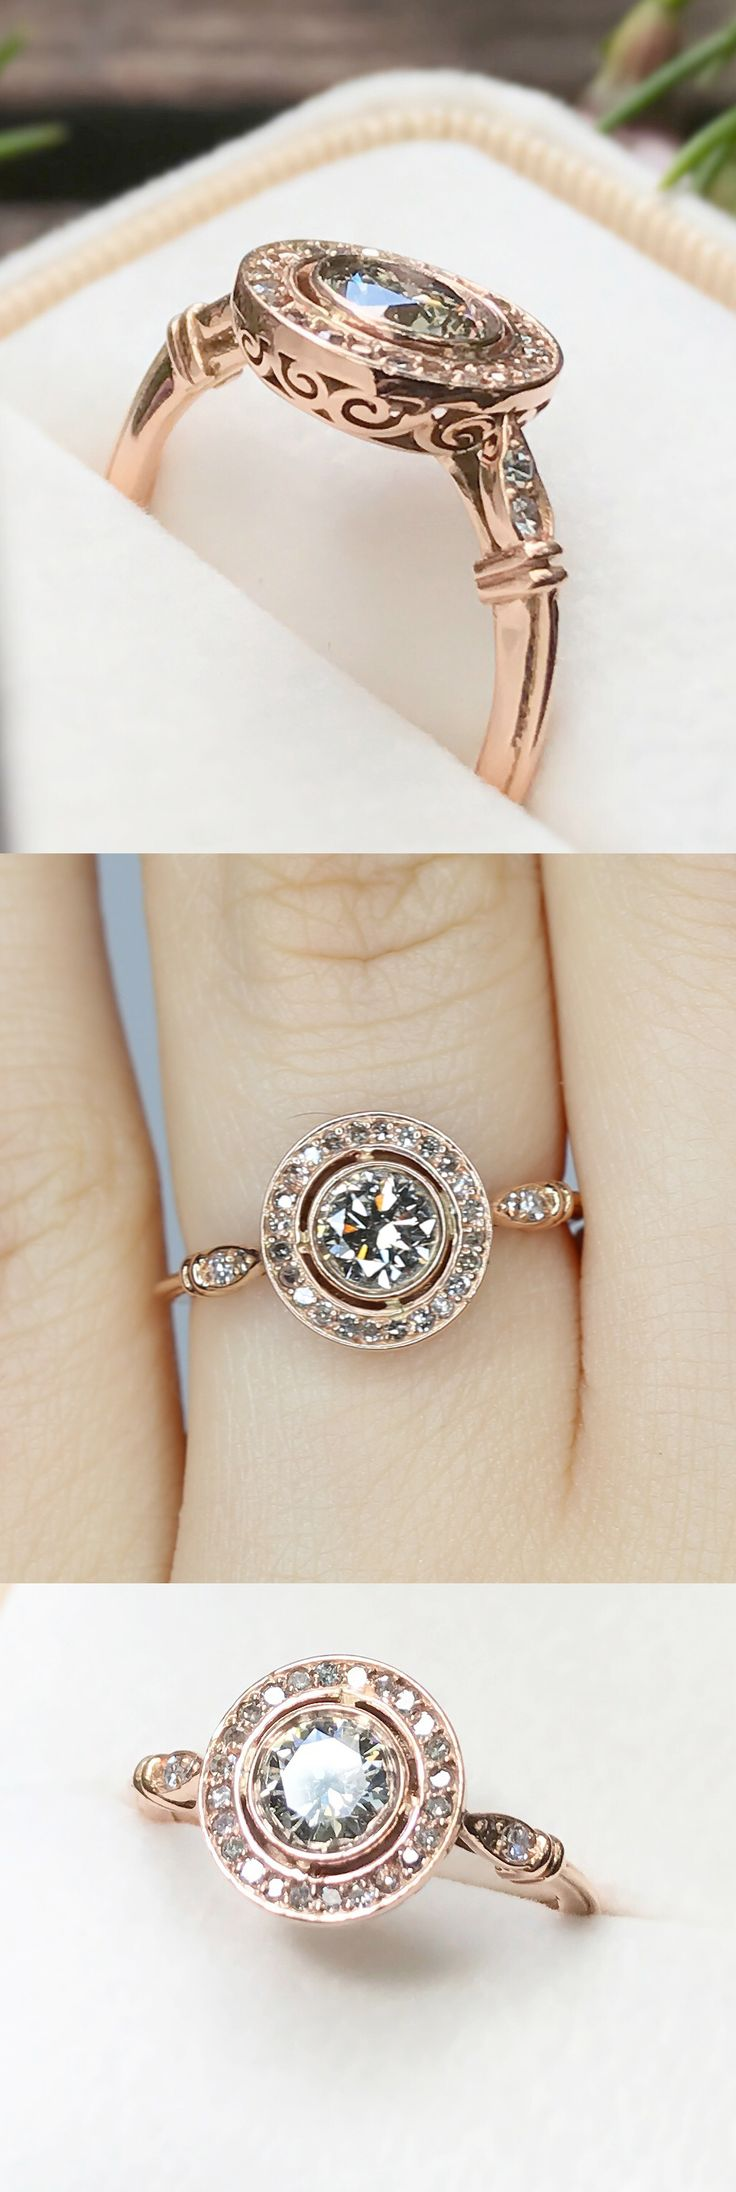 Inspired by elements of Art Deco, Georgian, and Edwardian design, this ring blends antique and contemporary elements together perfectly to create a clean, regal, and glamorous look.